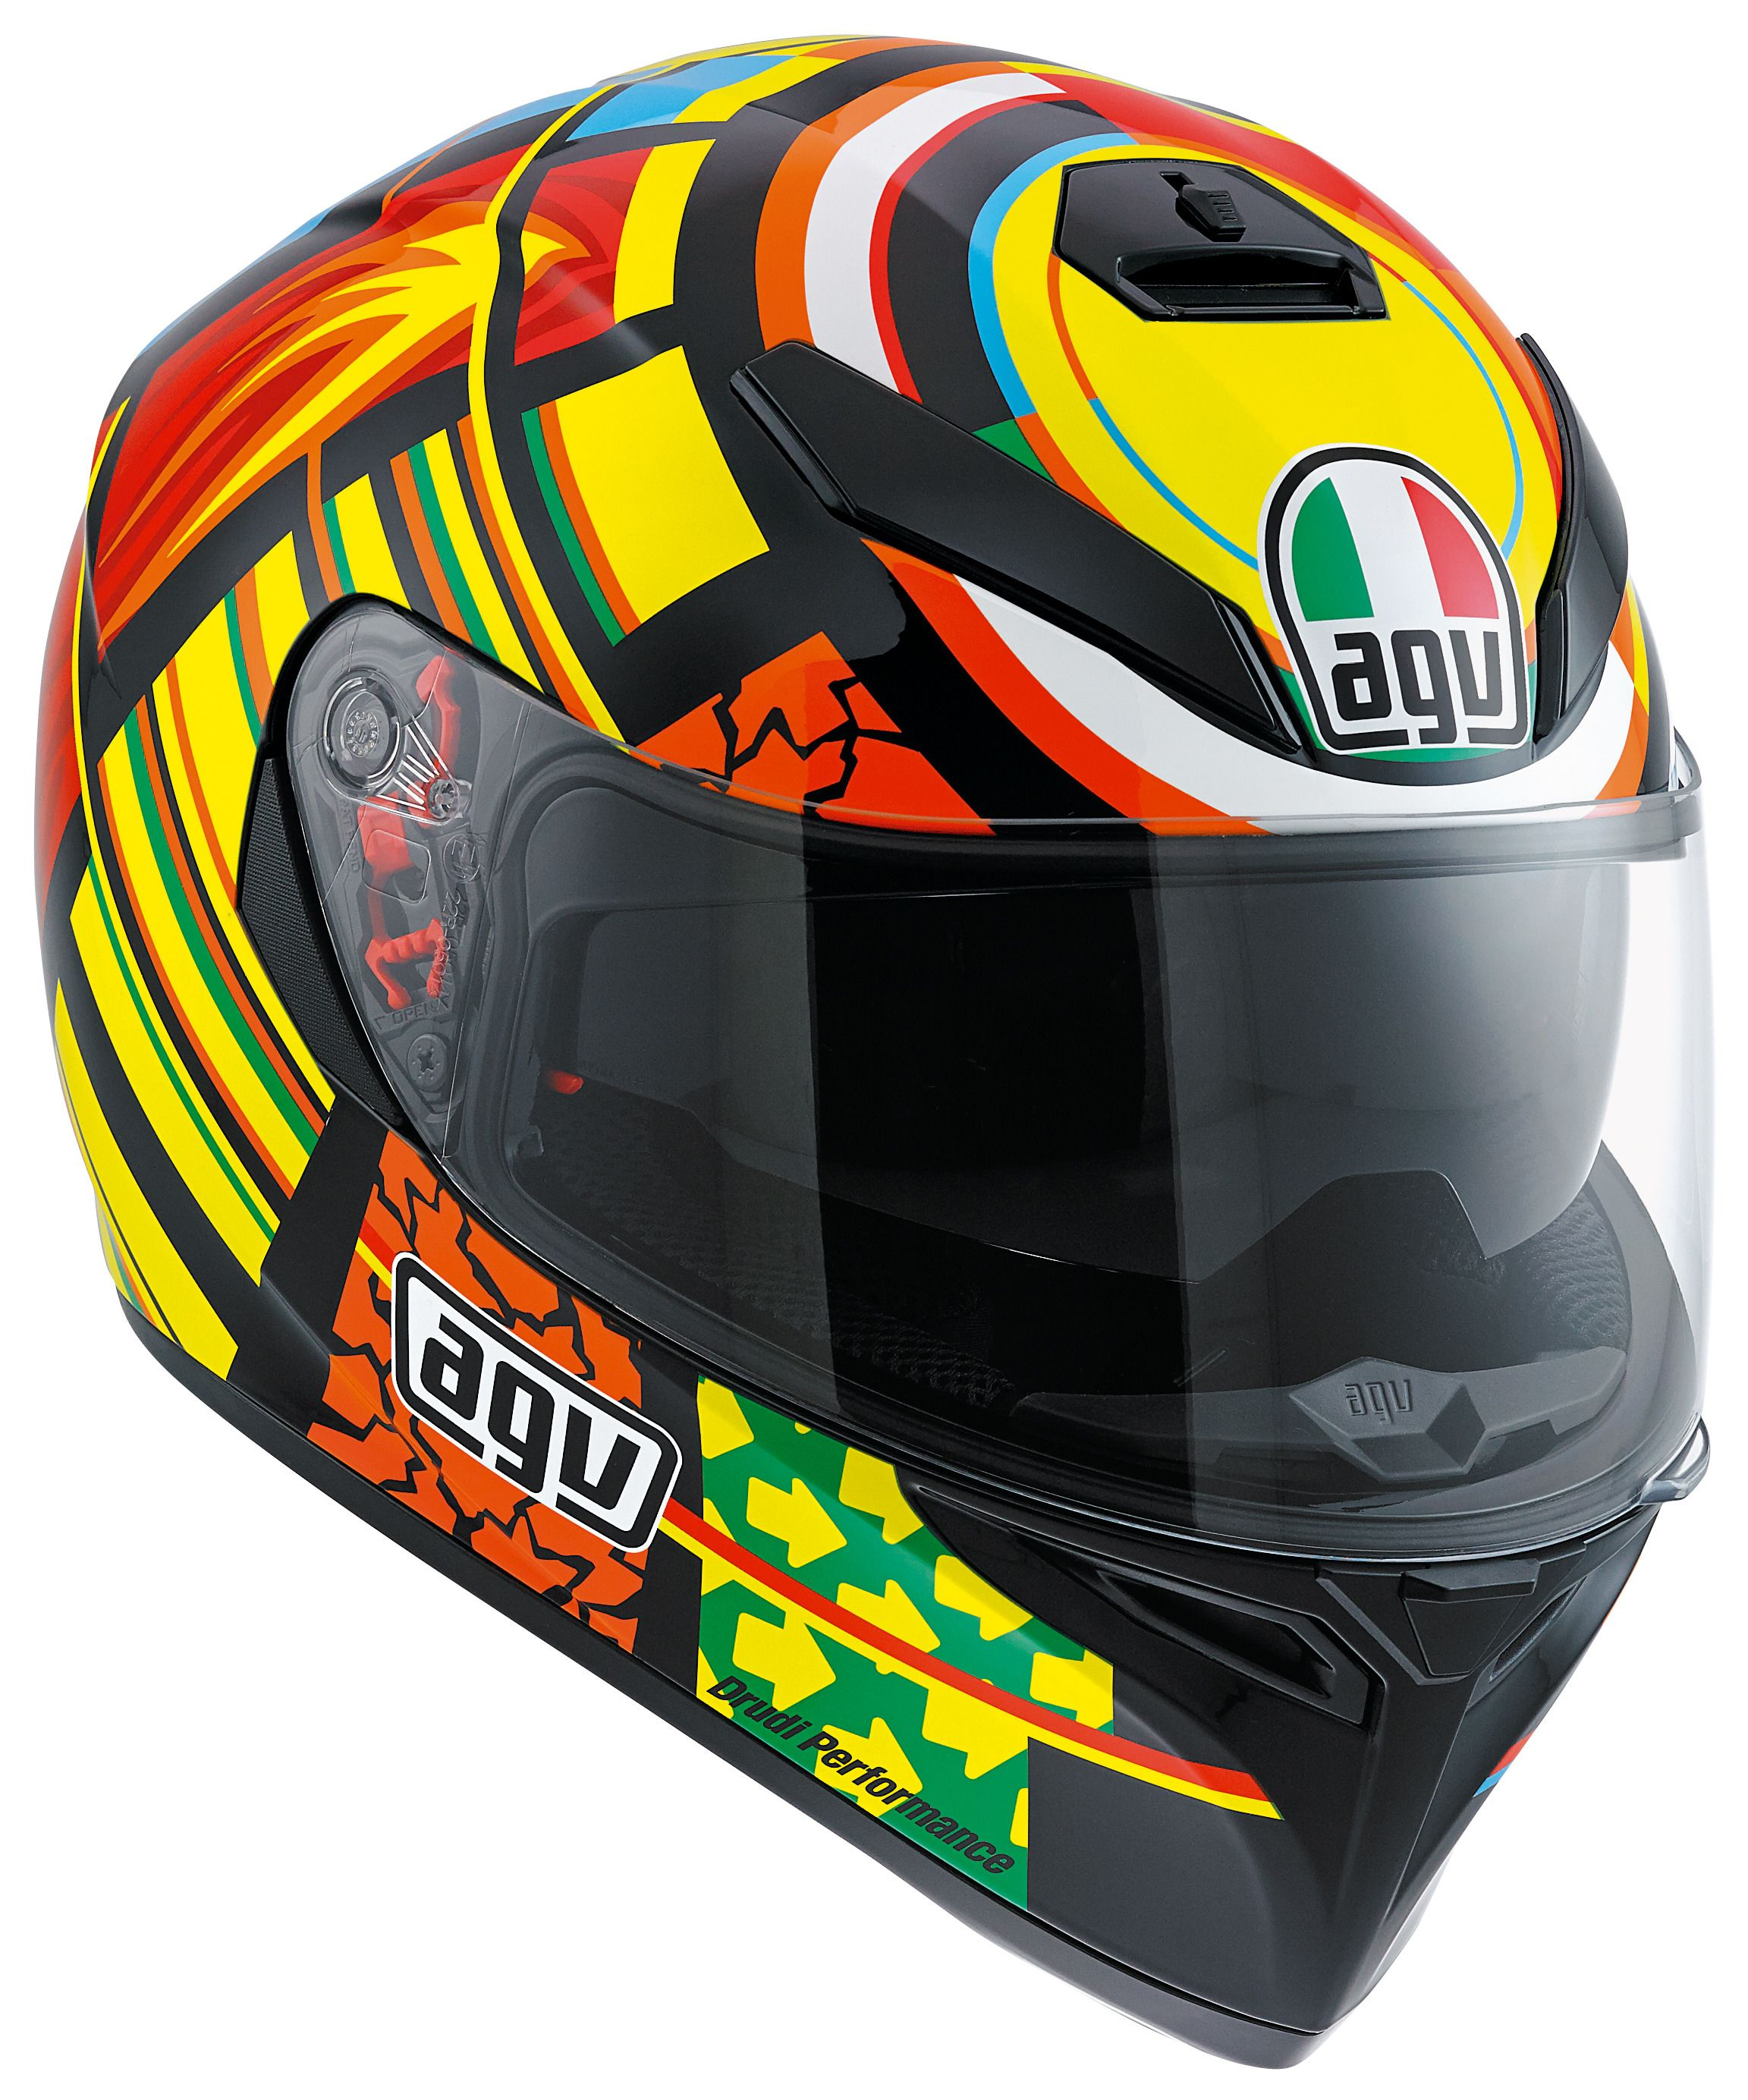 agv k3 sv elements helmet 33 89 96 off revzilla